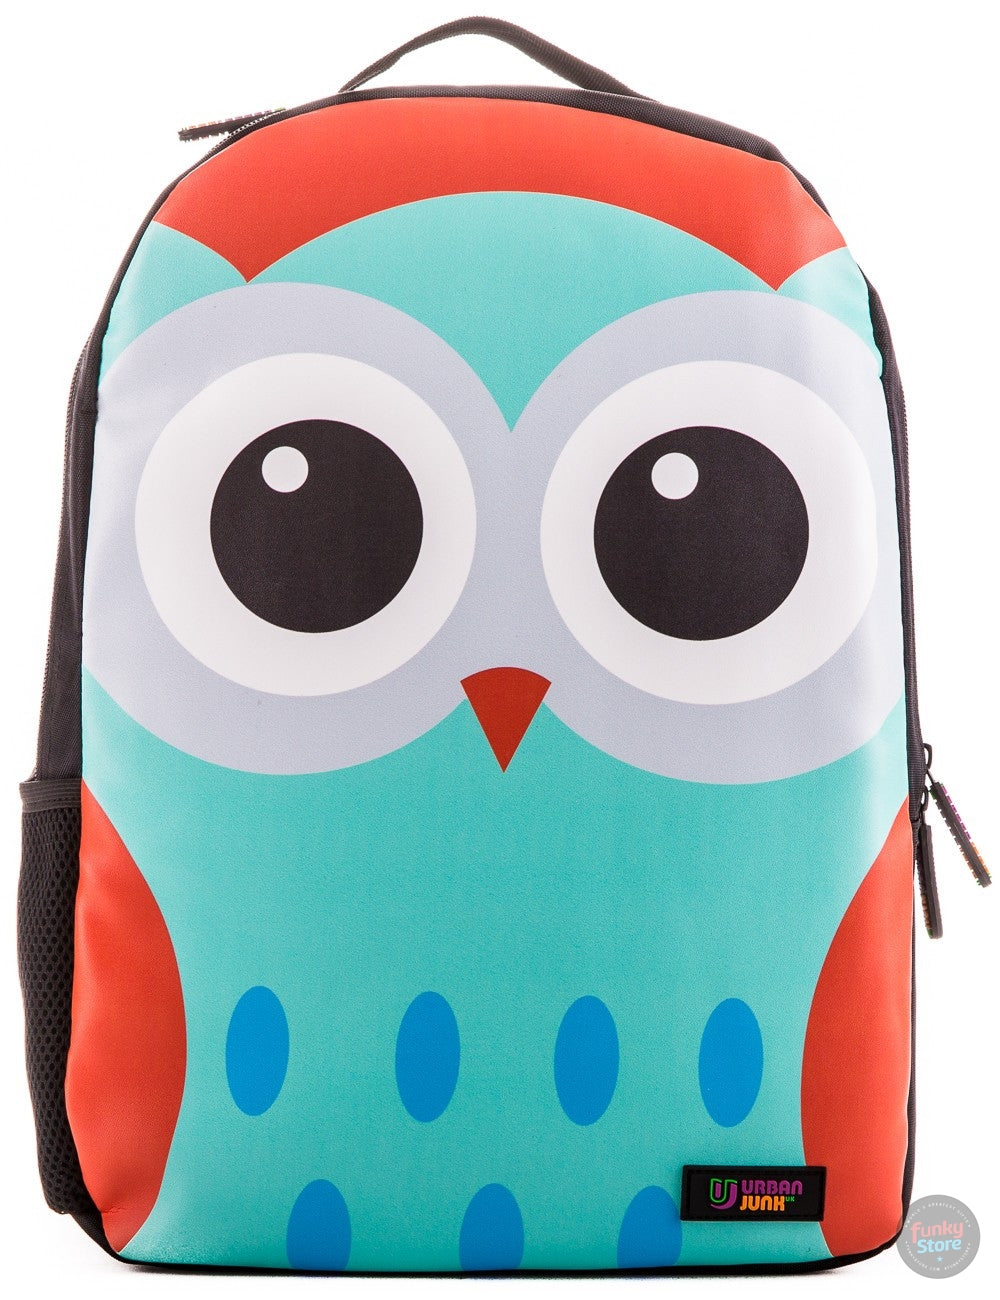 Owly Backpack